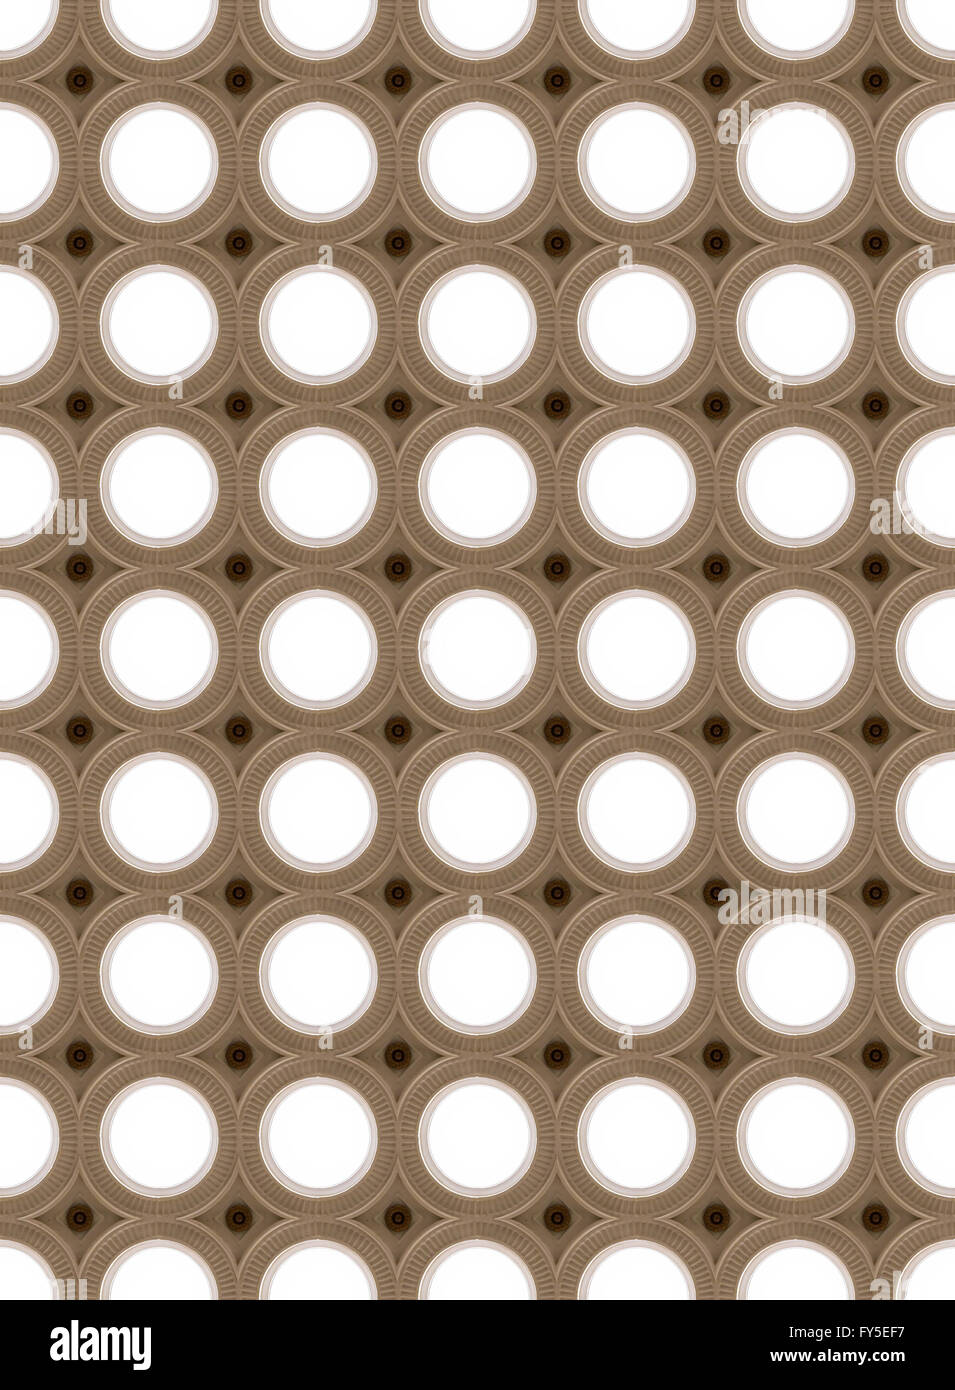 Seamless picture of lighting circles, art-deco stile Stock Photo